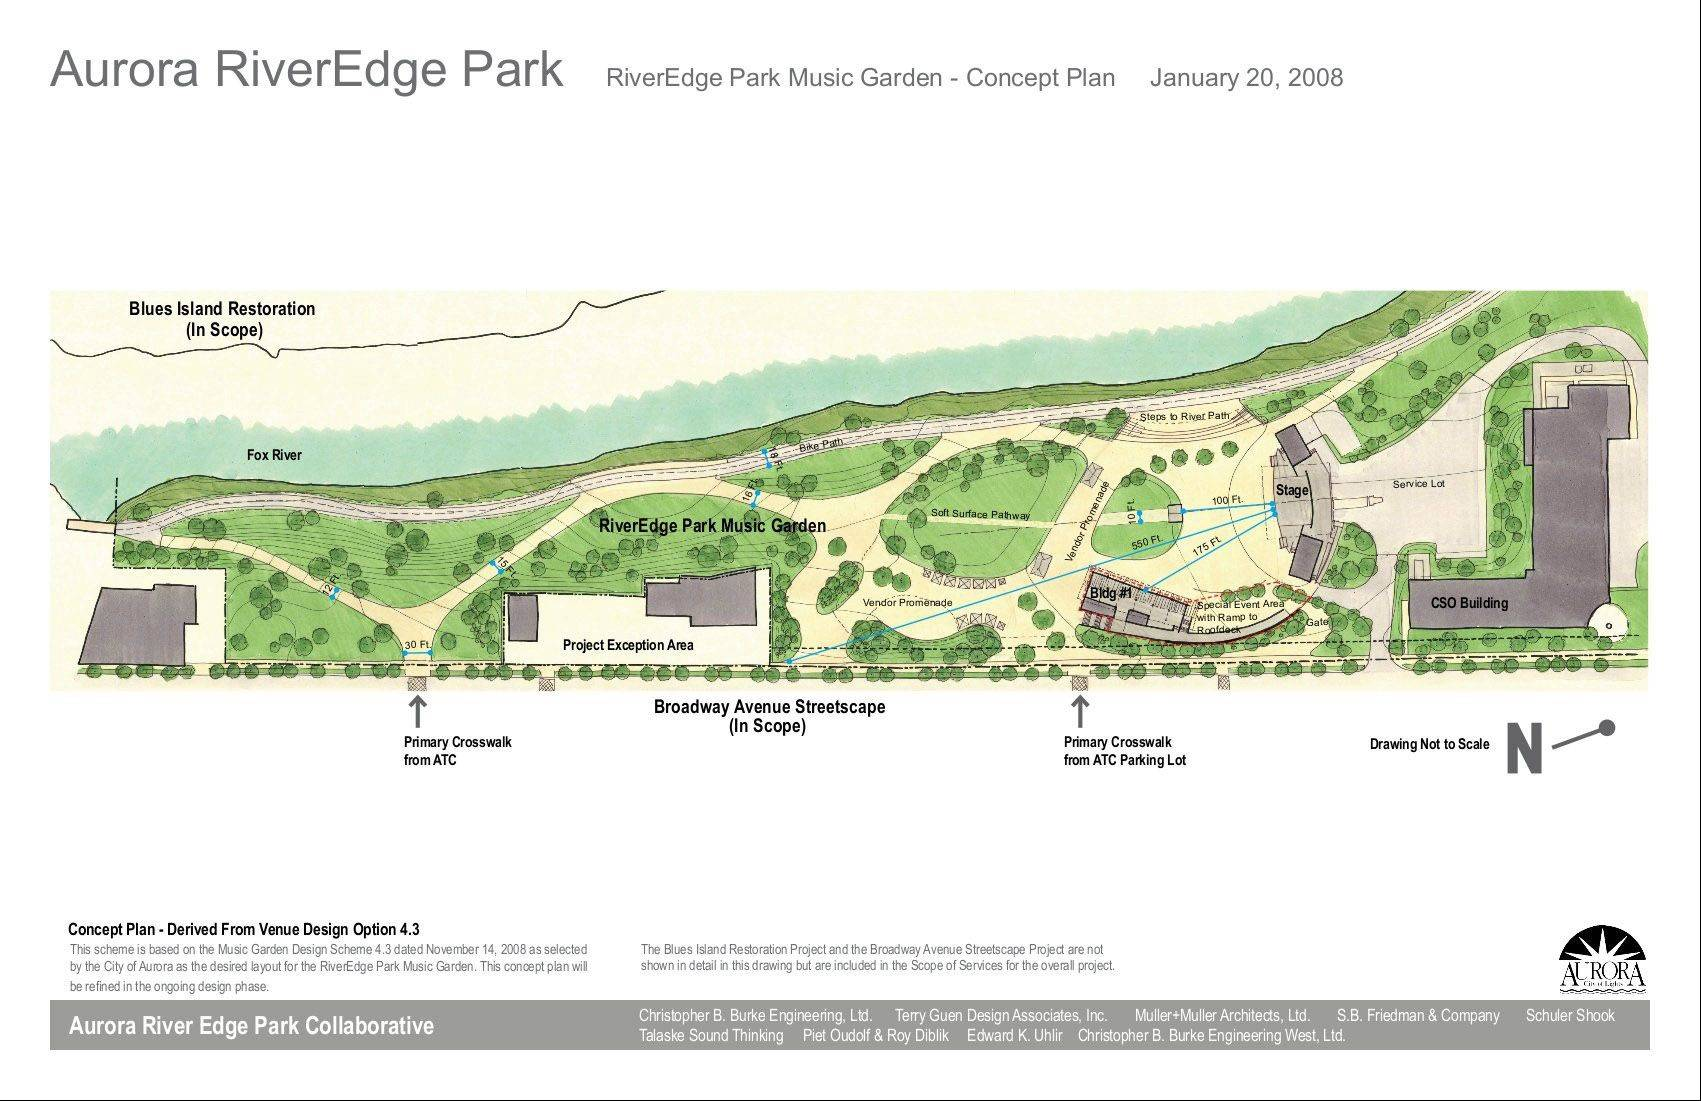 A 2008 rendering of RiverEdge Park shows the Music Garden's stage, concessions area, pathways and seating lawn much as the areas appear today, now that the venue is complete and ready for its grand opening Friday, June 14. The Music Garden is the first phase of a broader park development, which also includes a children's playground, a wetland educational center, a gathering space on the west side of the river and a pedestrian bridge.